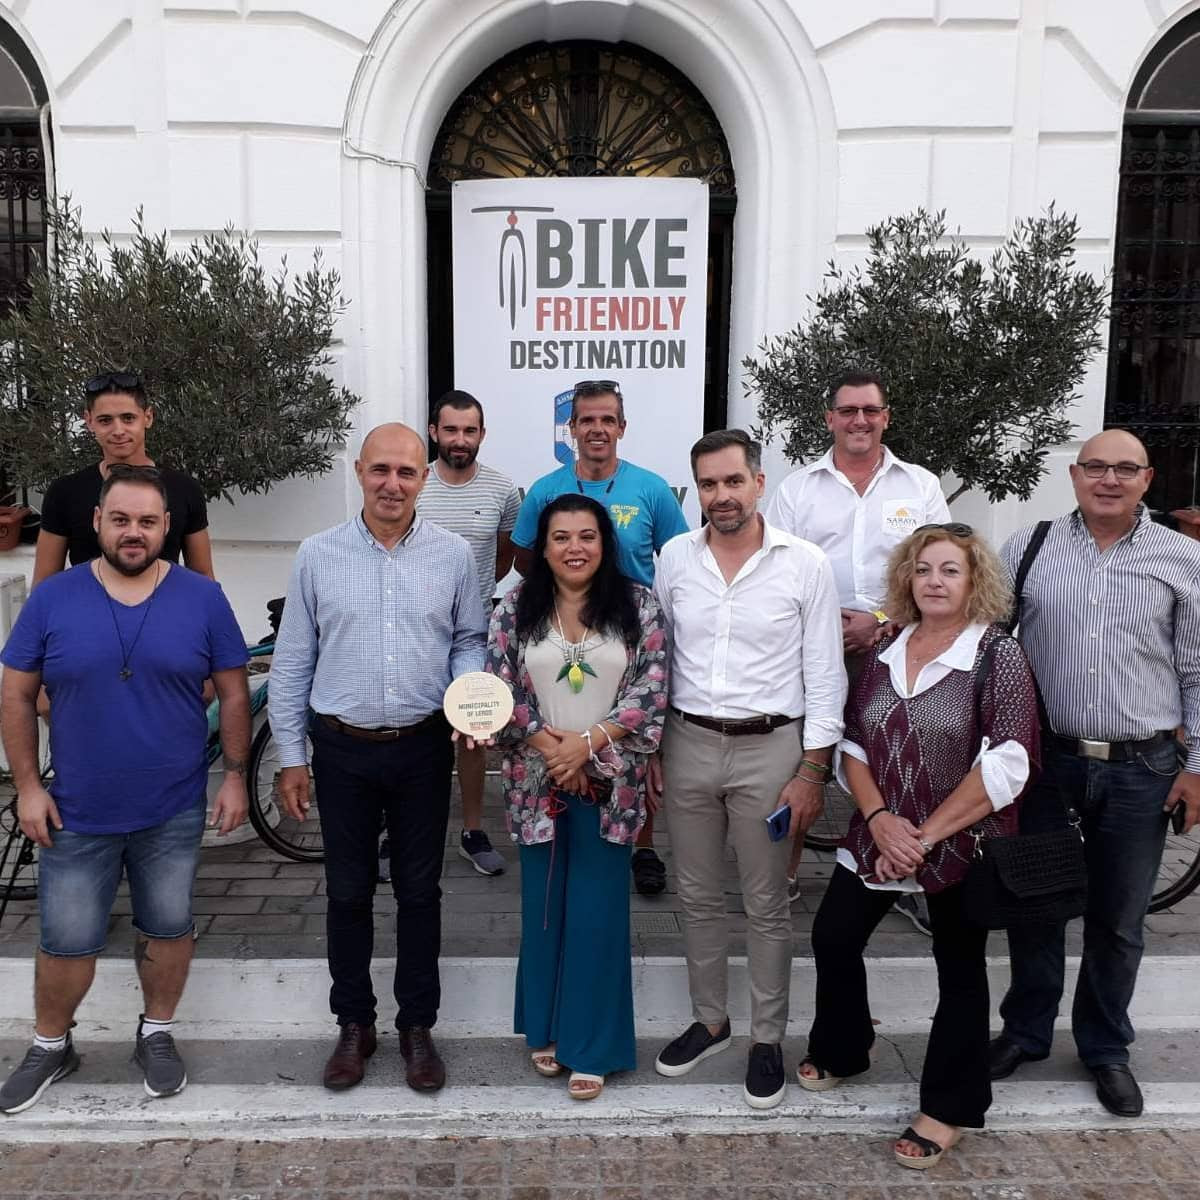 Leros-Bike Friendly Destination1